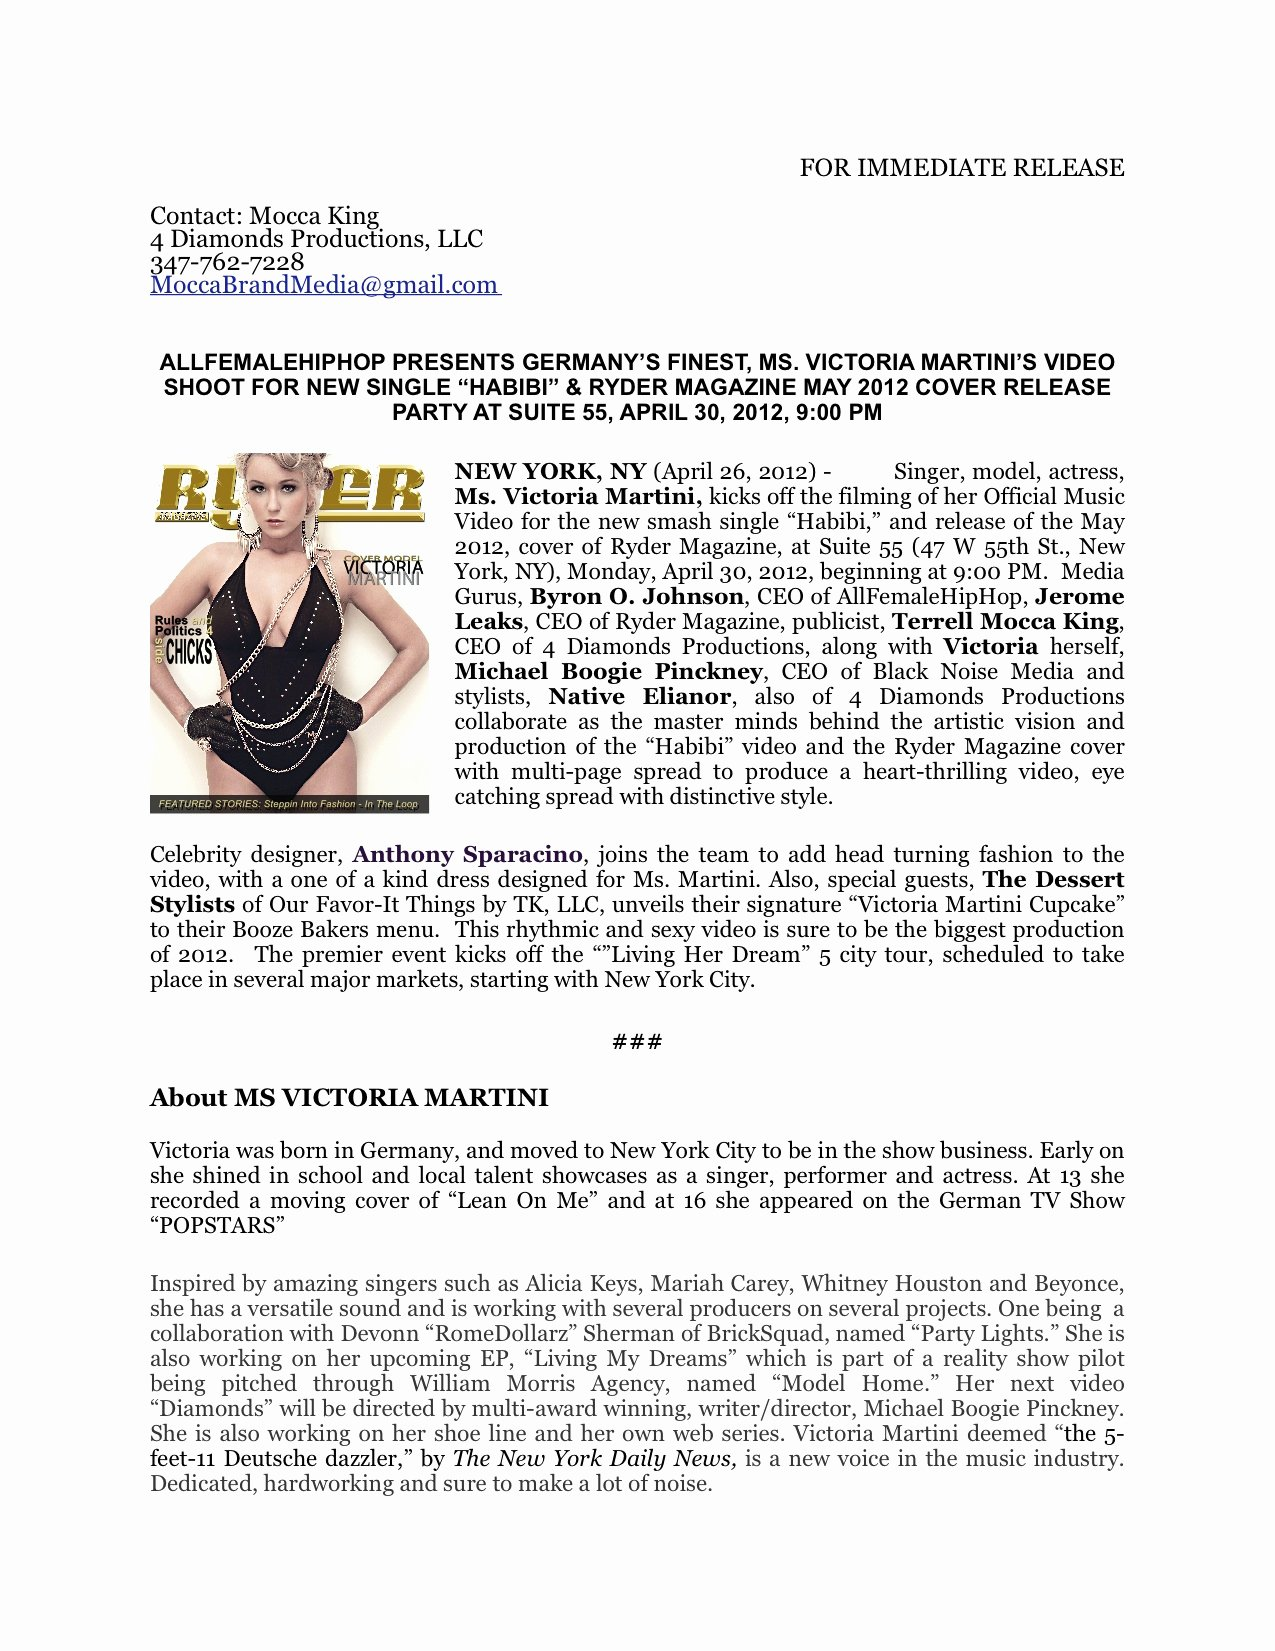 Music Press Release Template Best Of Victoria Martini